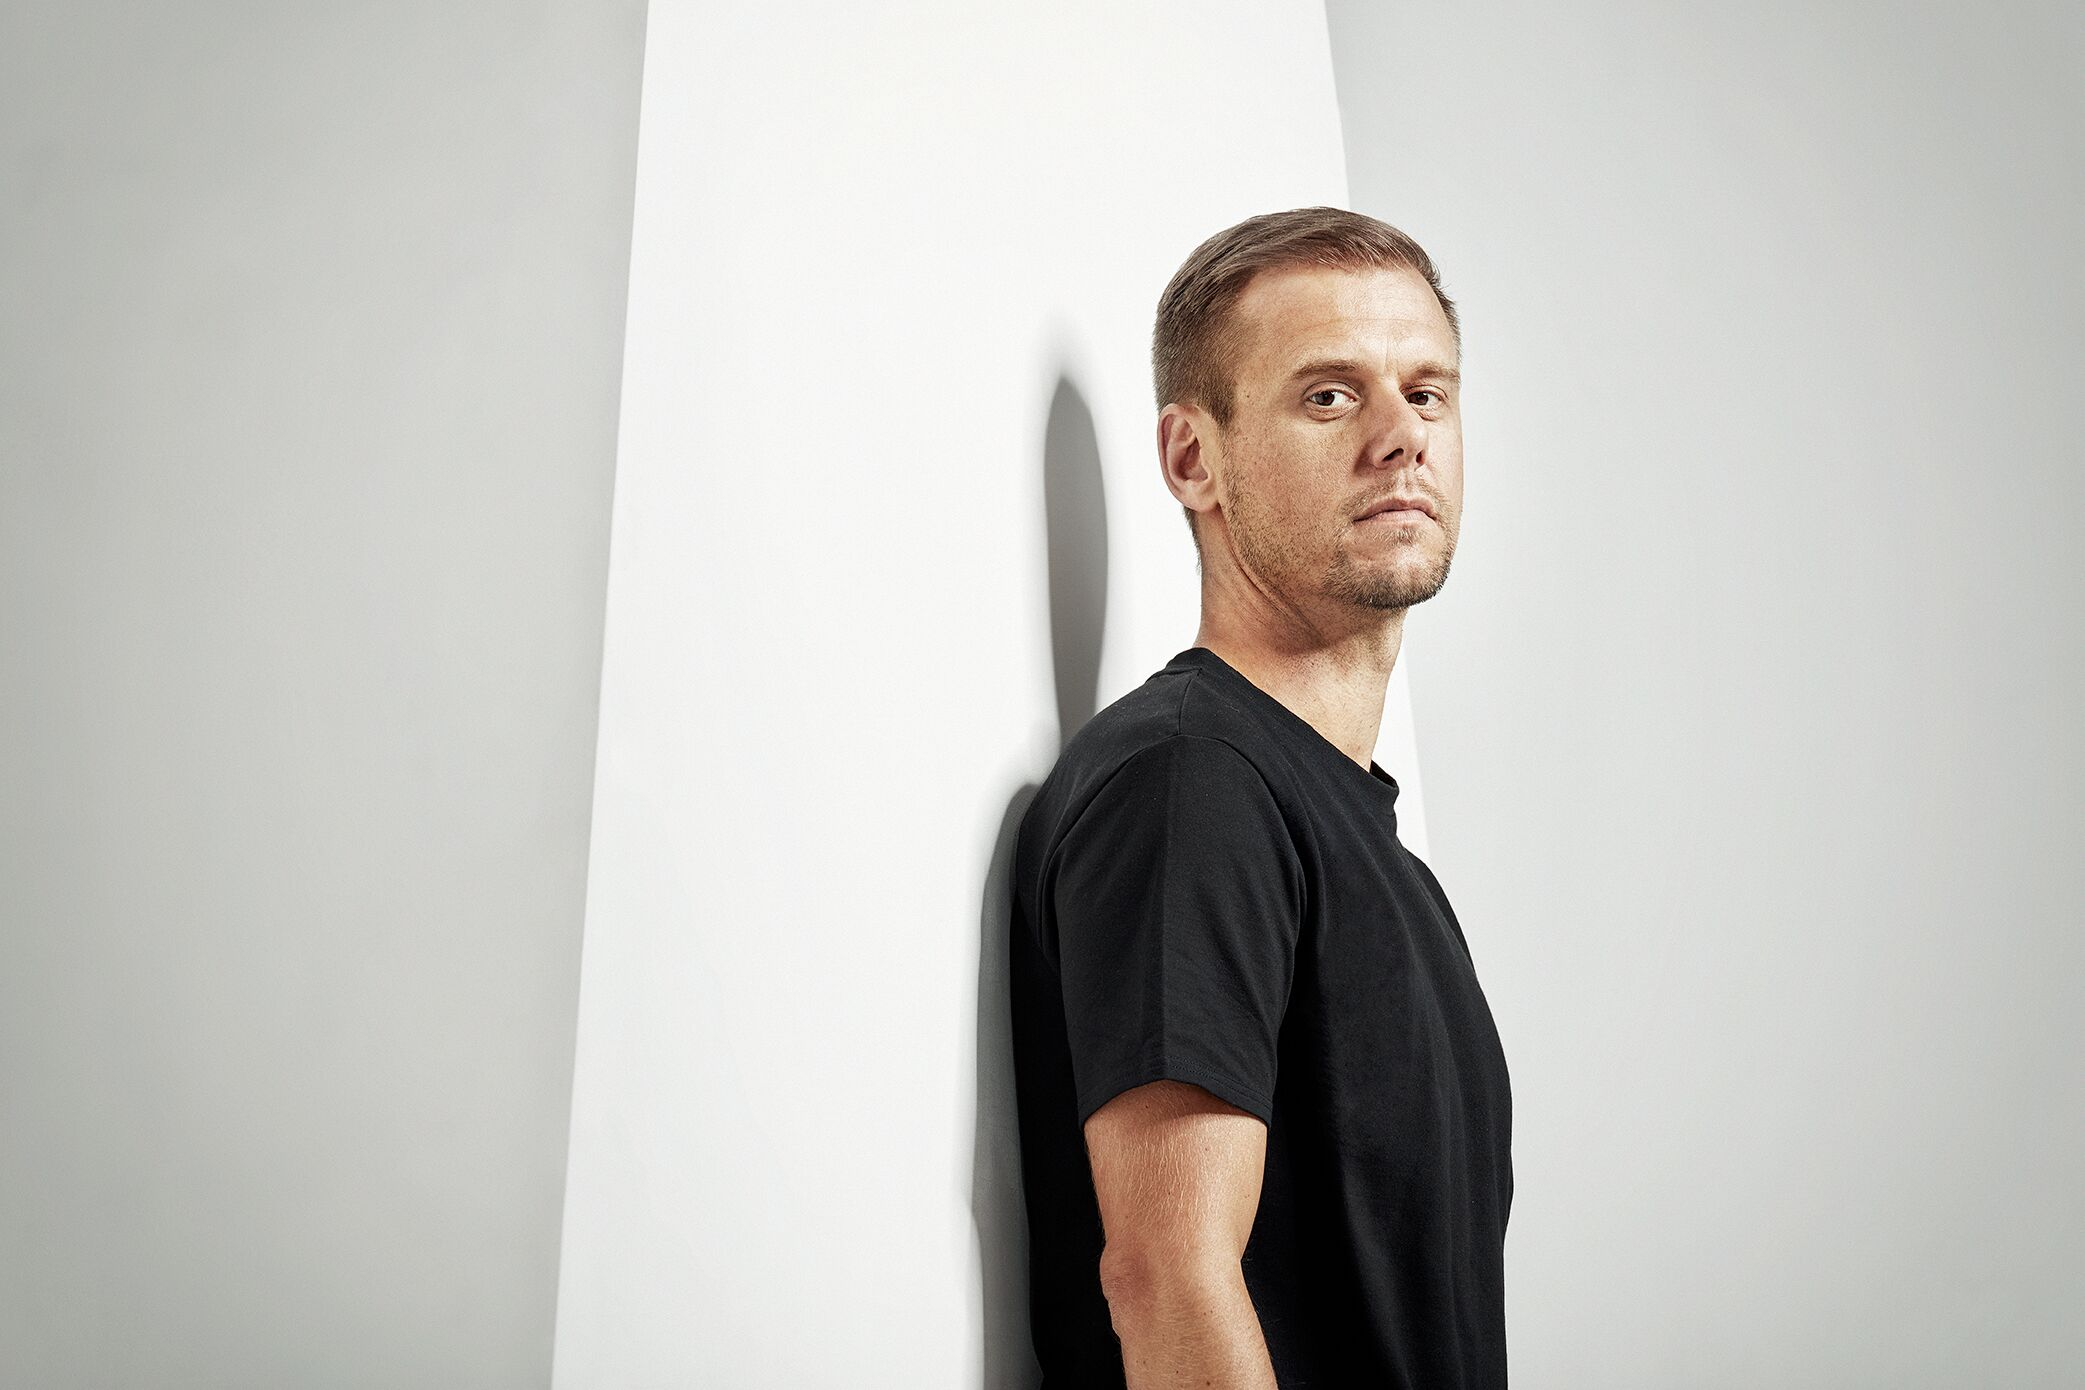 Armin van Buuren Announces New Album: 'BALANCE'